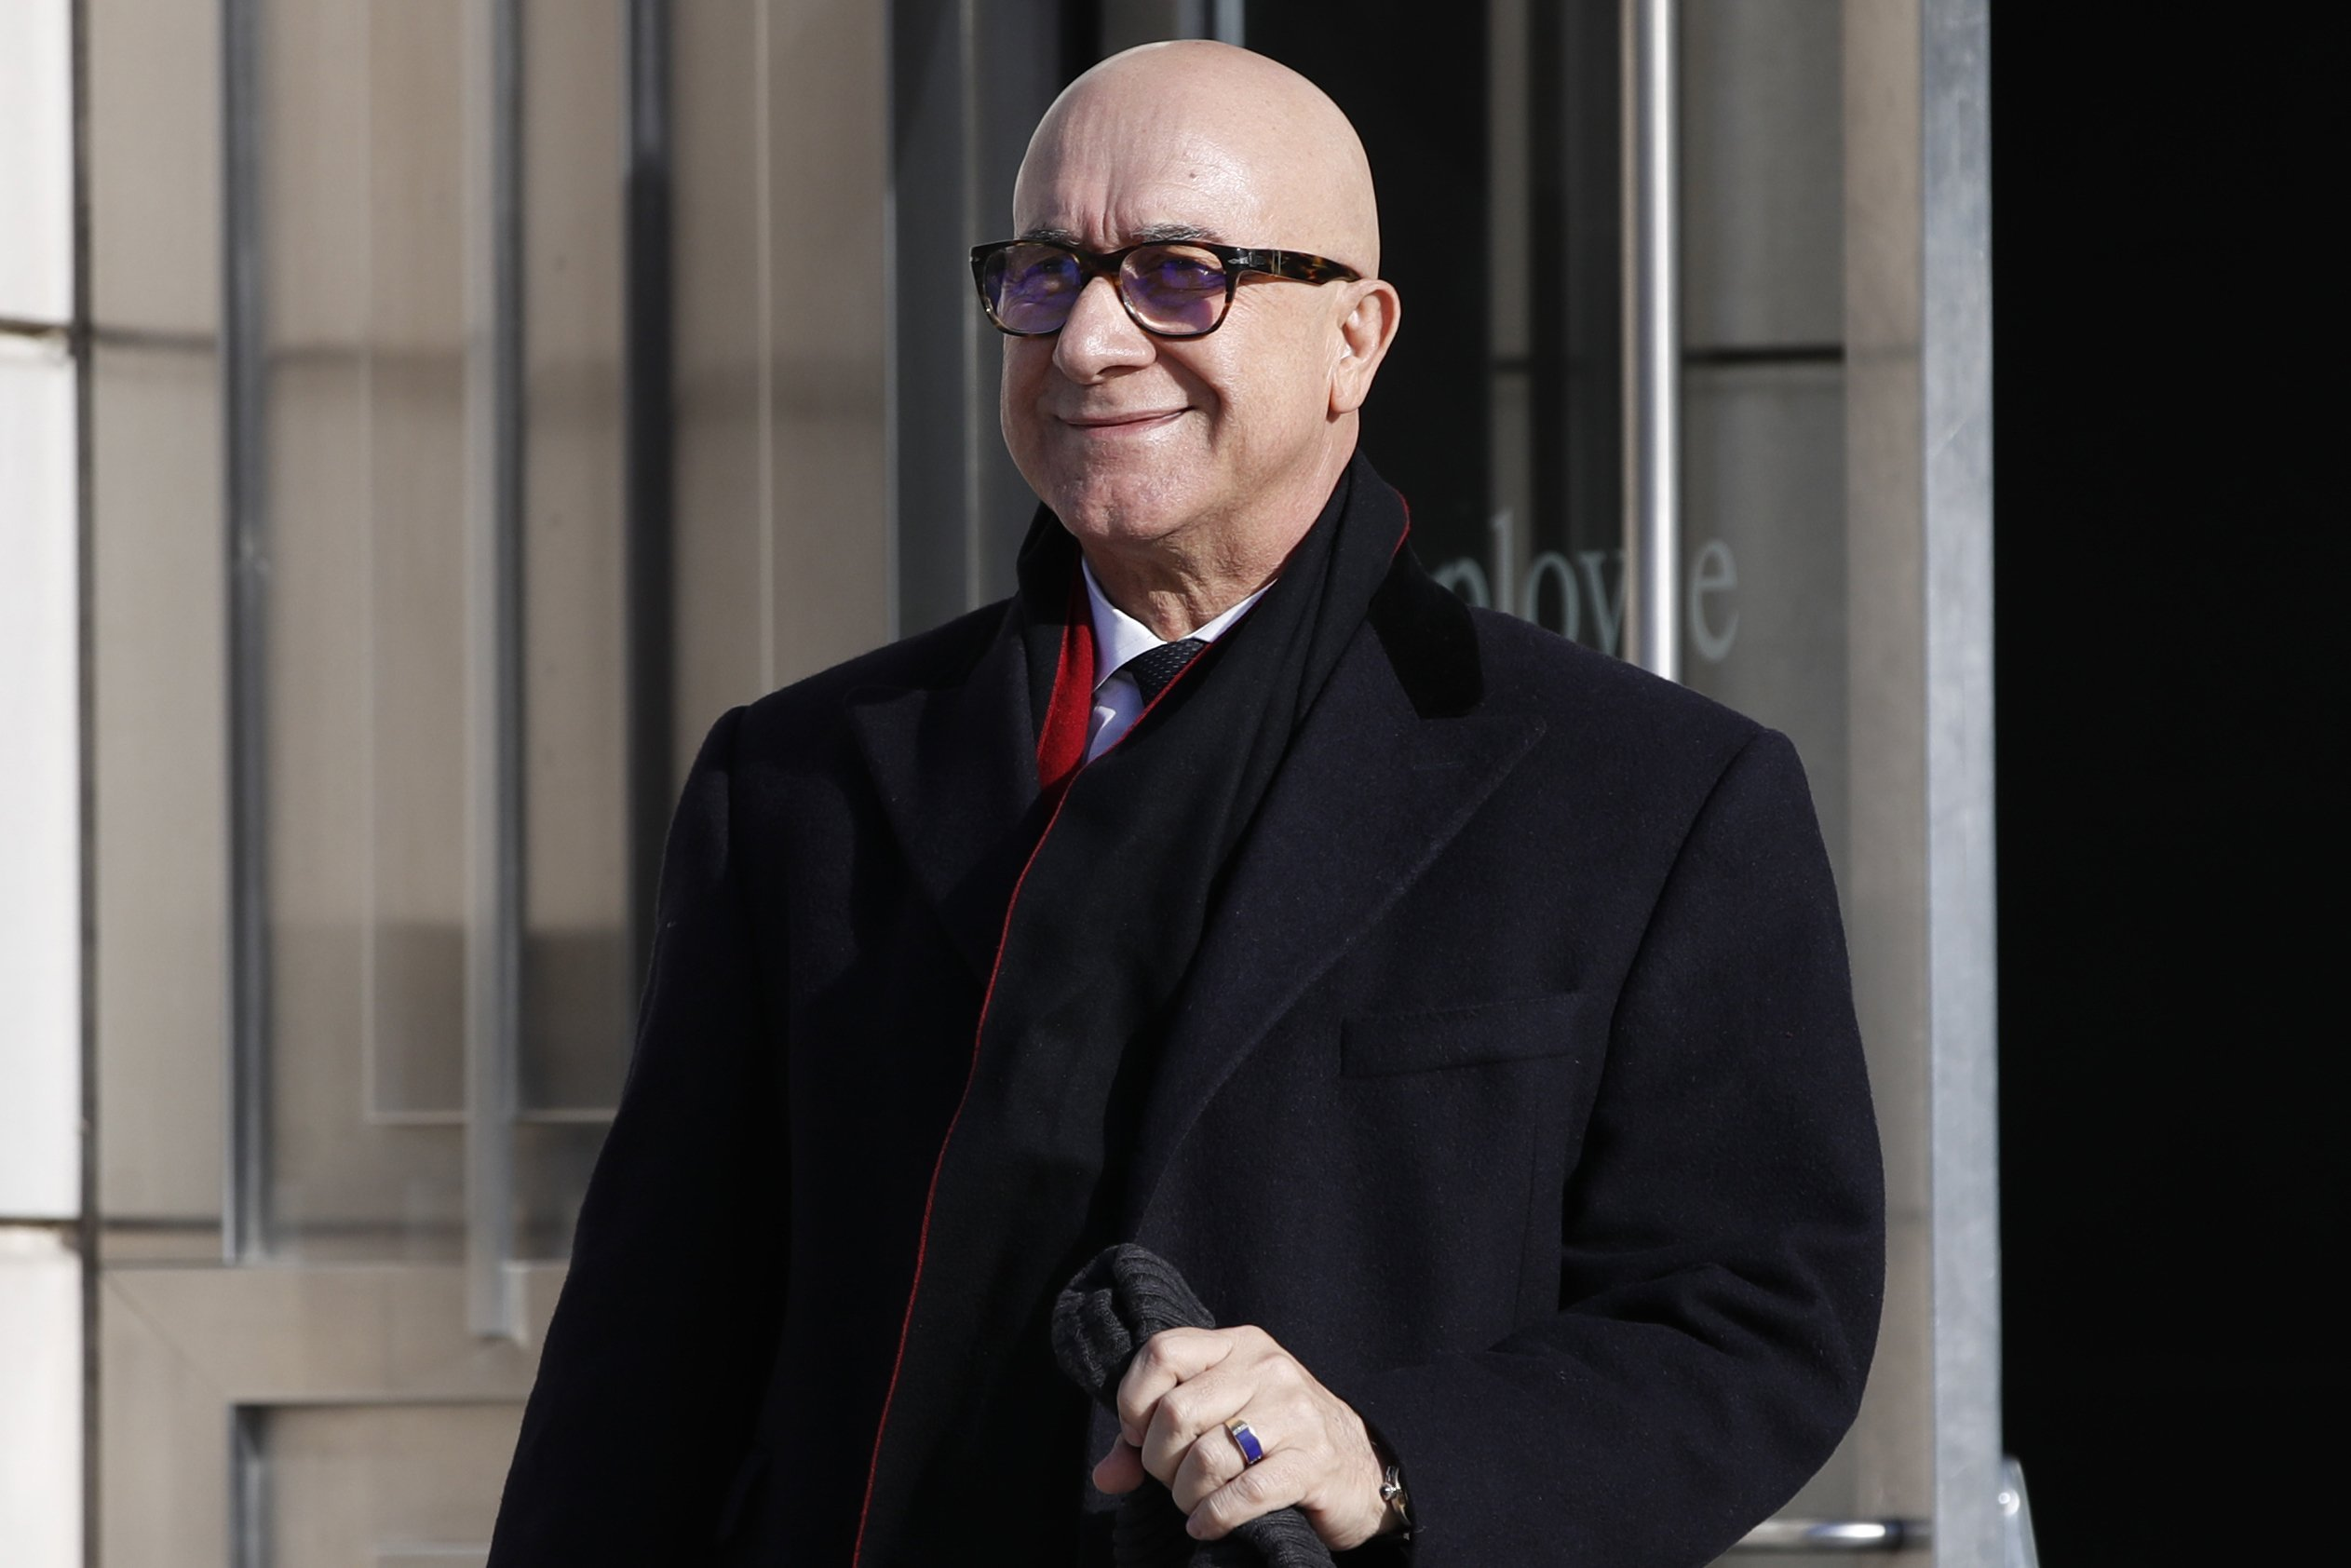 Michael Flynn's former business partner Bijan Kian found guilty on lobbying charges